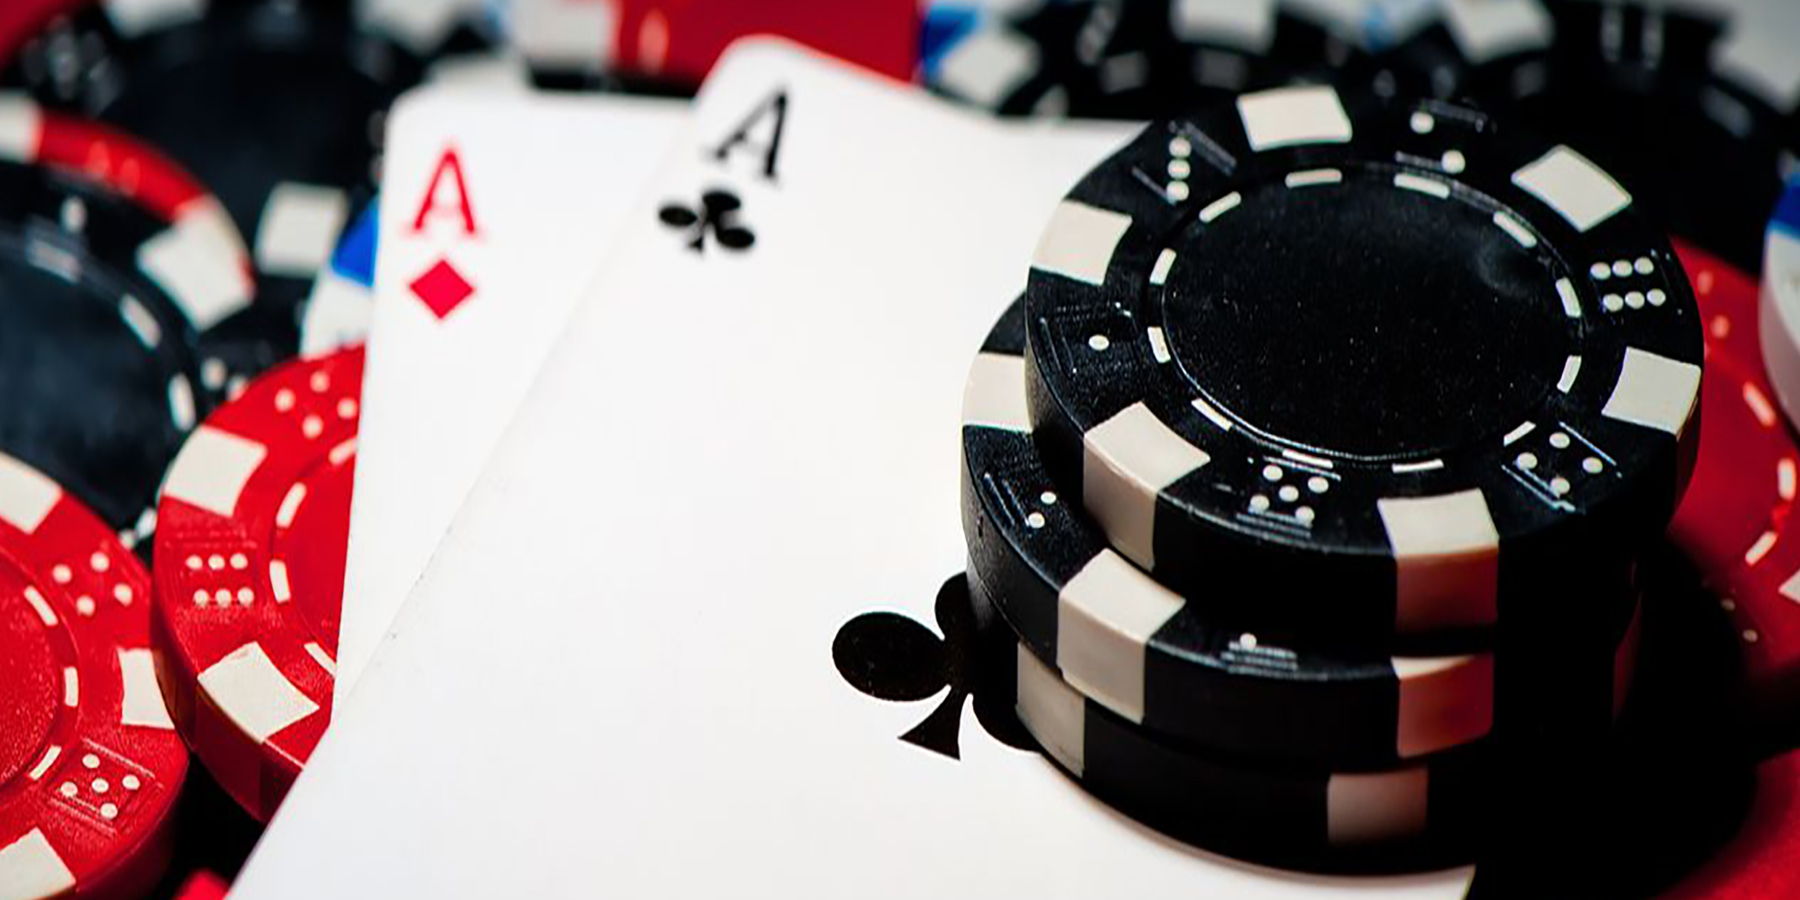 About Online Casino Games.